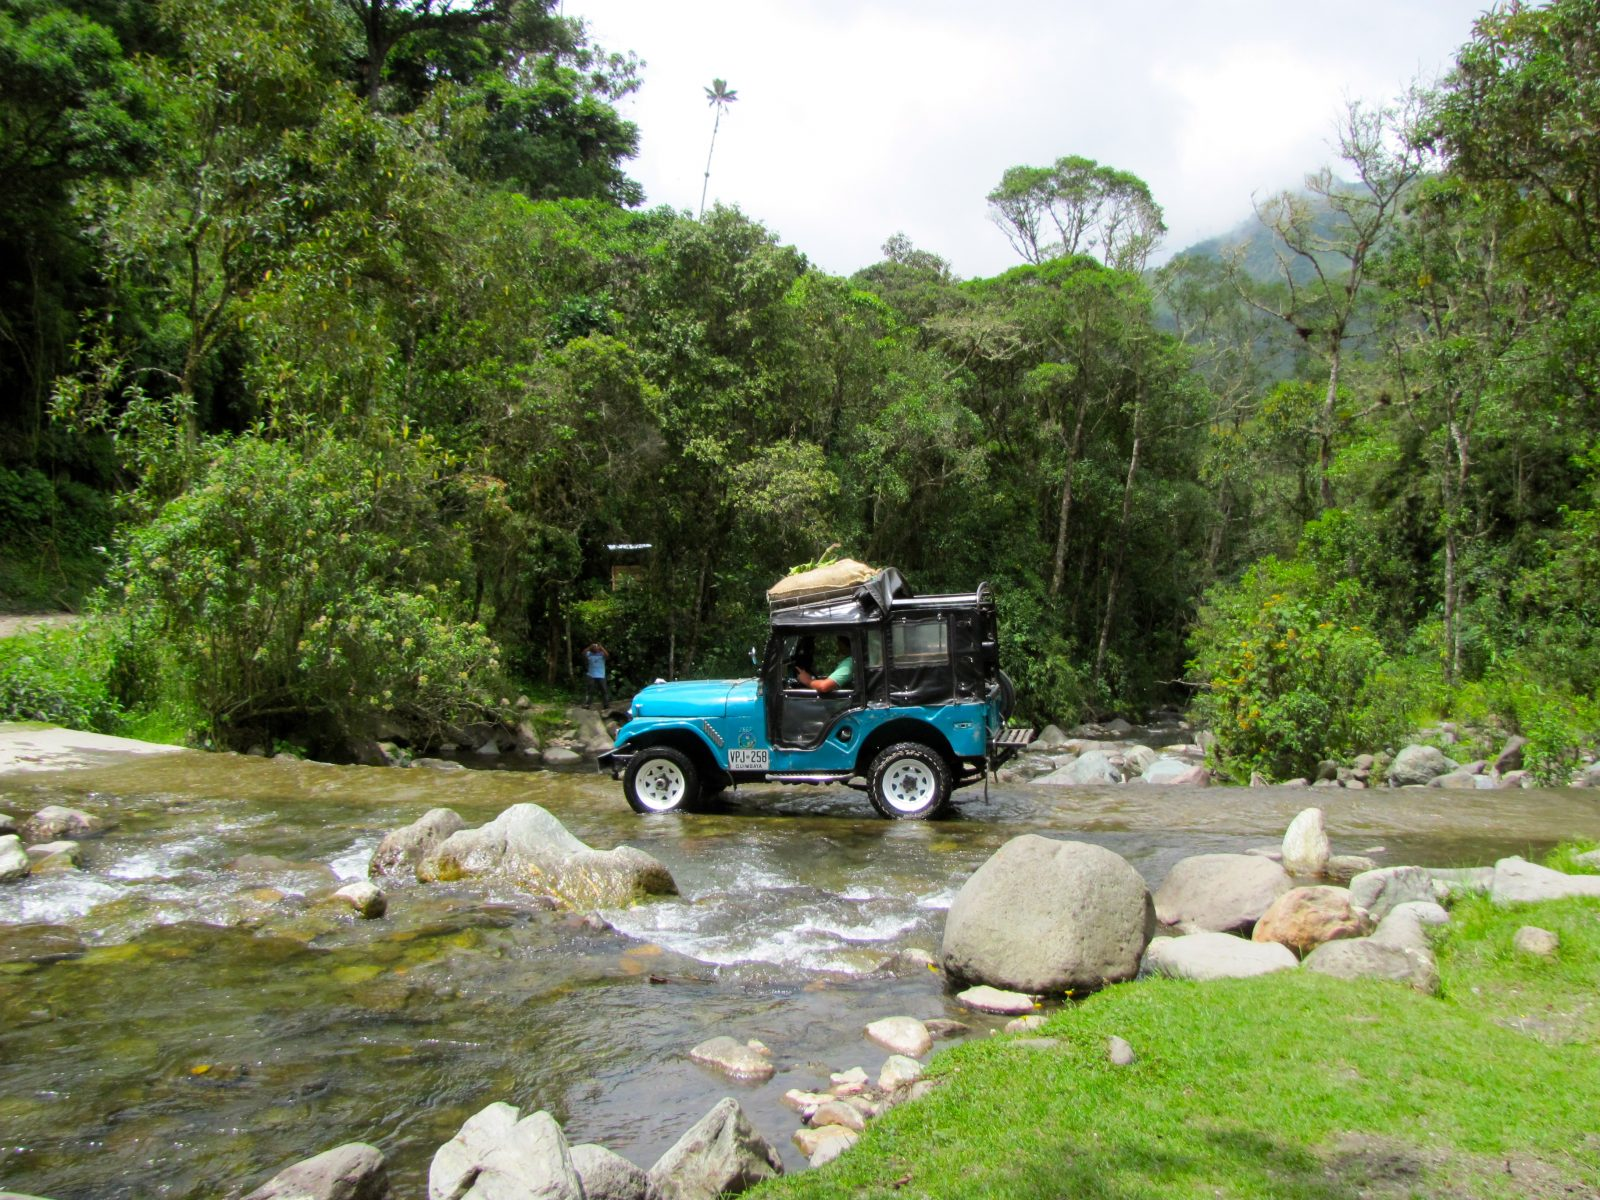 A jeep crosses a stream in the Valle de cocora